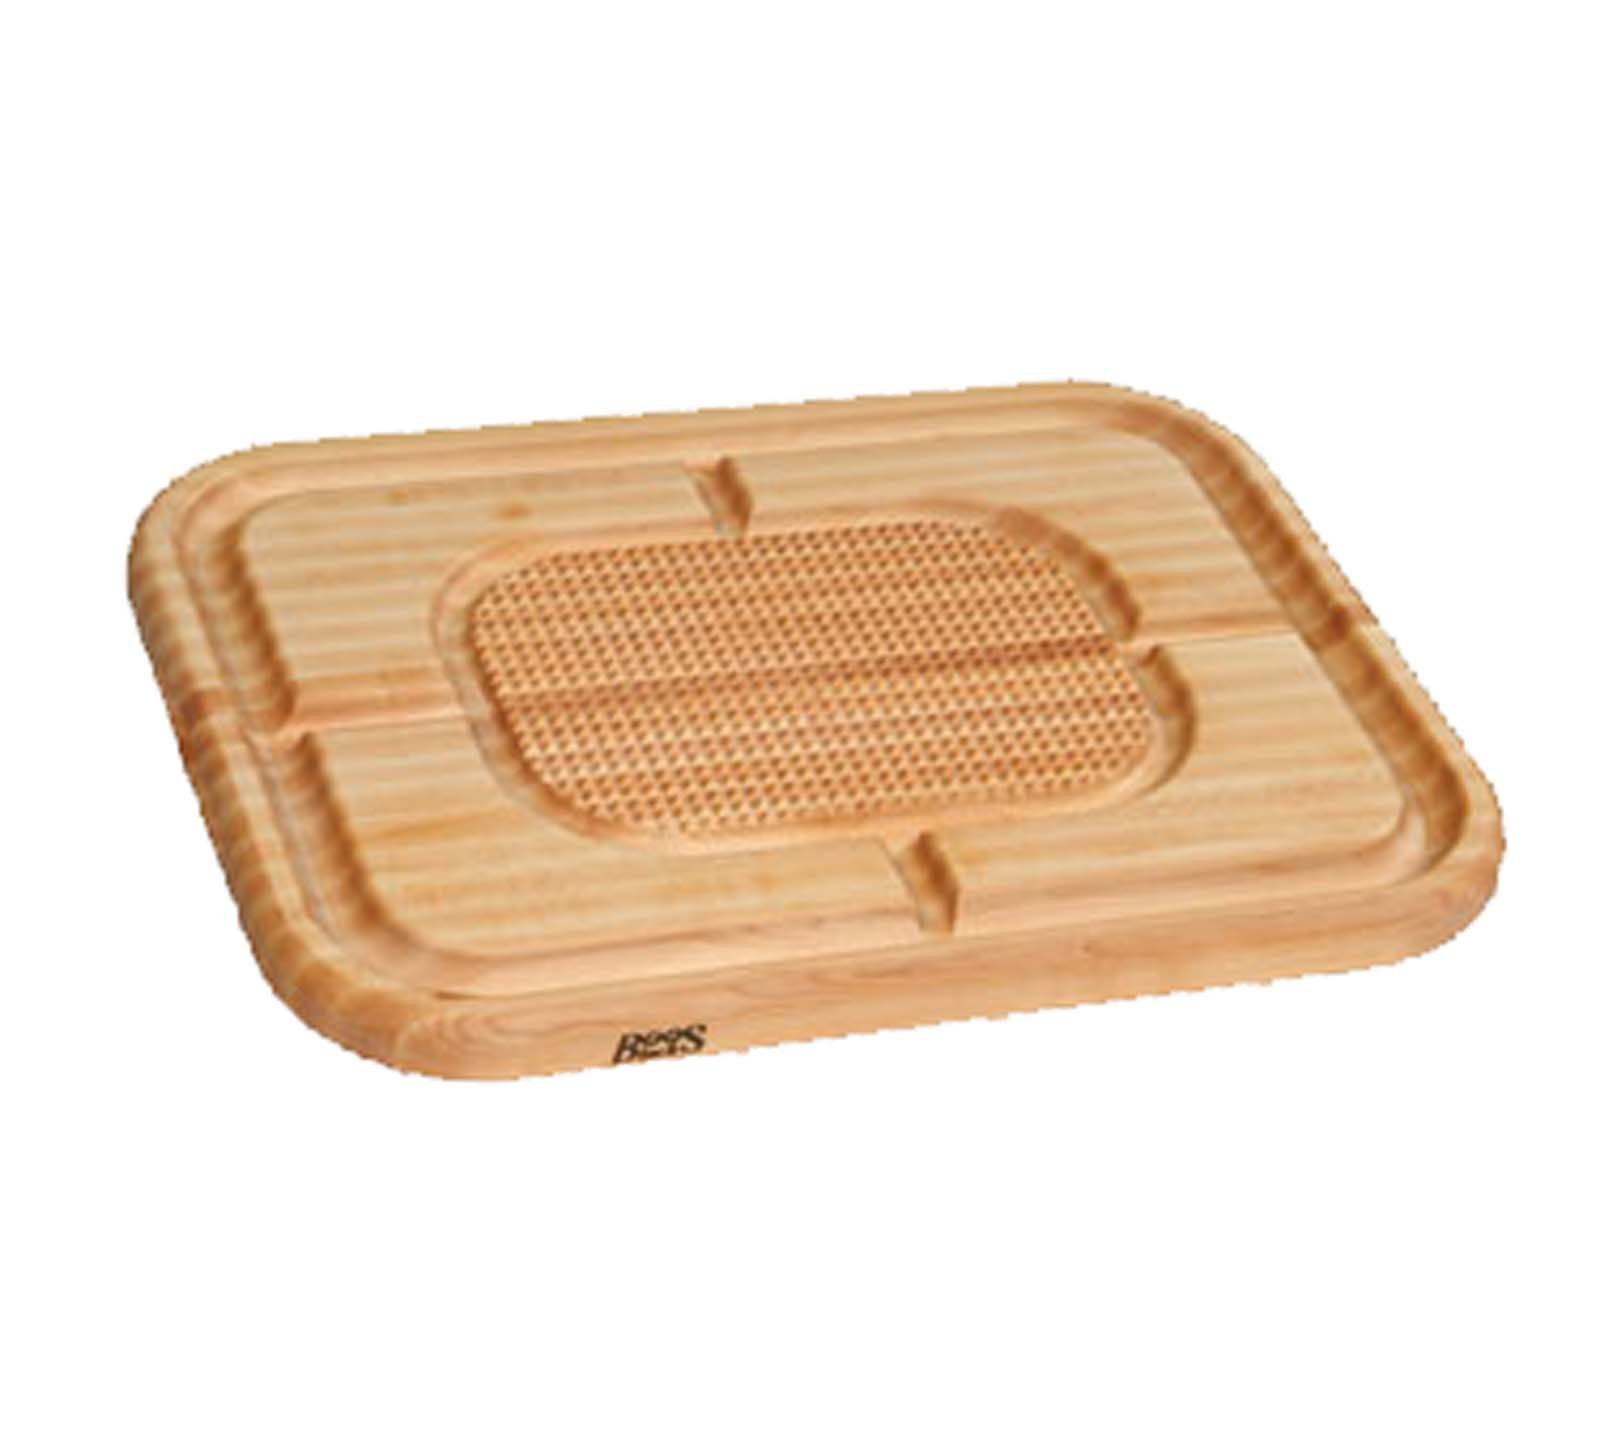 John Boos Carving Collection Pyramid Design Reversible Maple Cutting Board with Juice Groove, 24'' x 18'' x 1.5 Inches